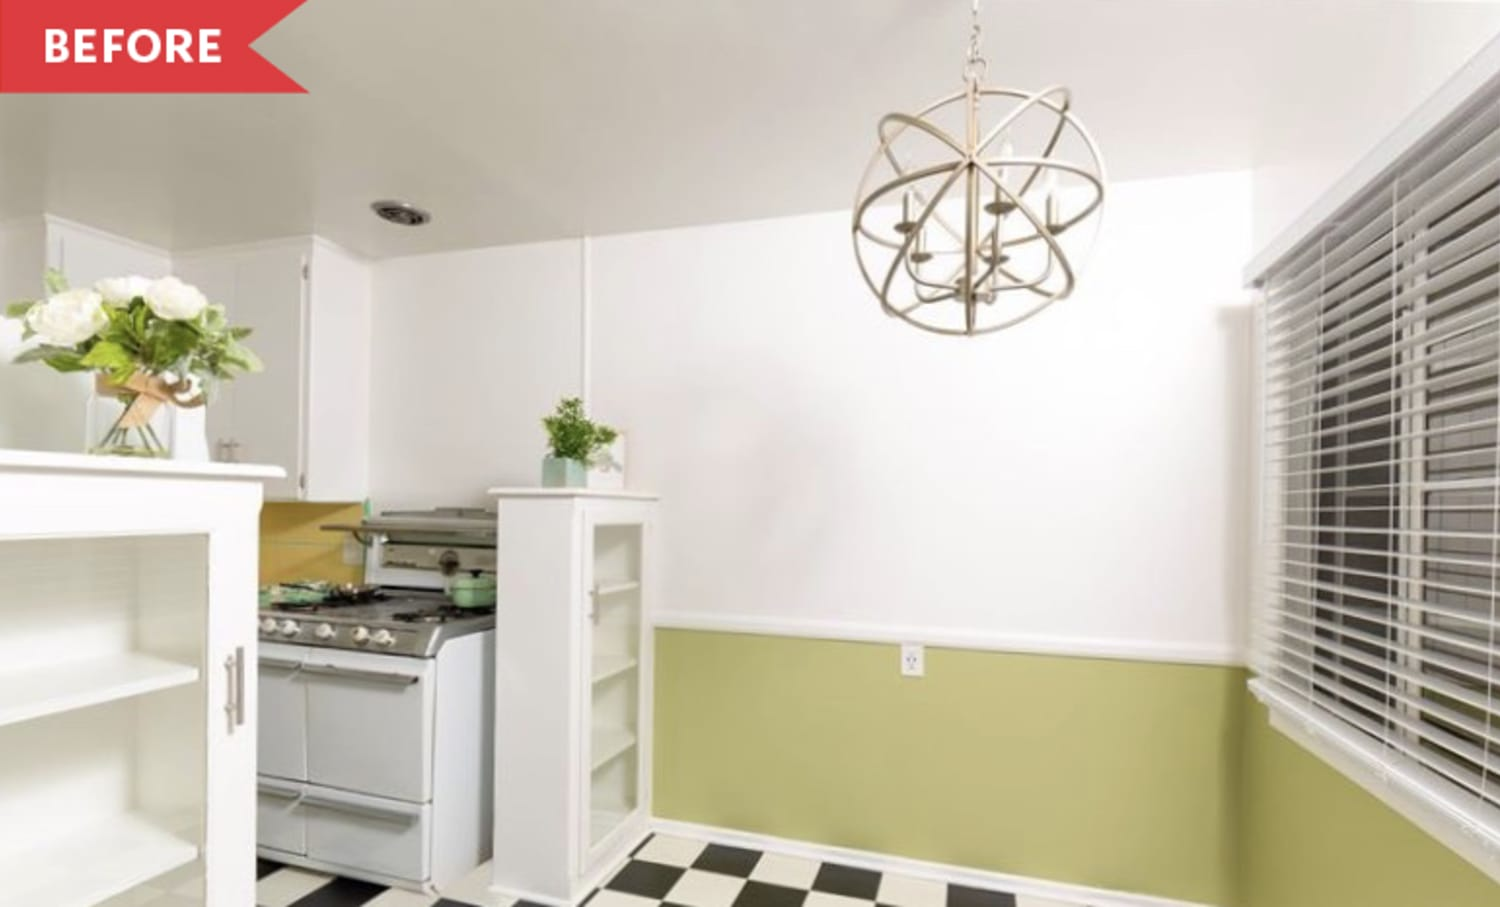 Before & After: This Rental Kitchen Got a $700 Vintage-Style Makeover